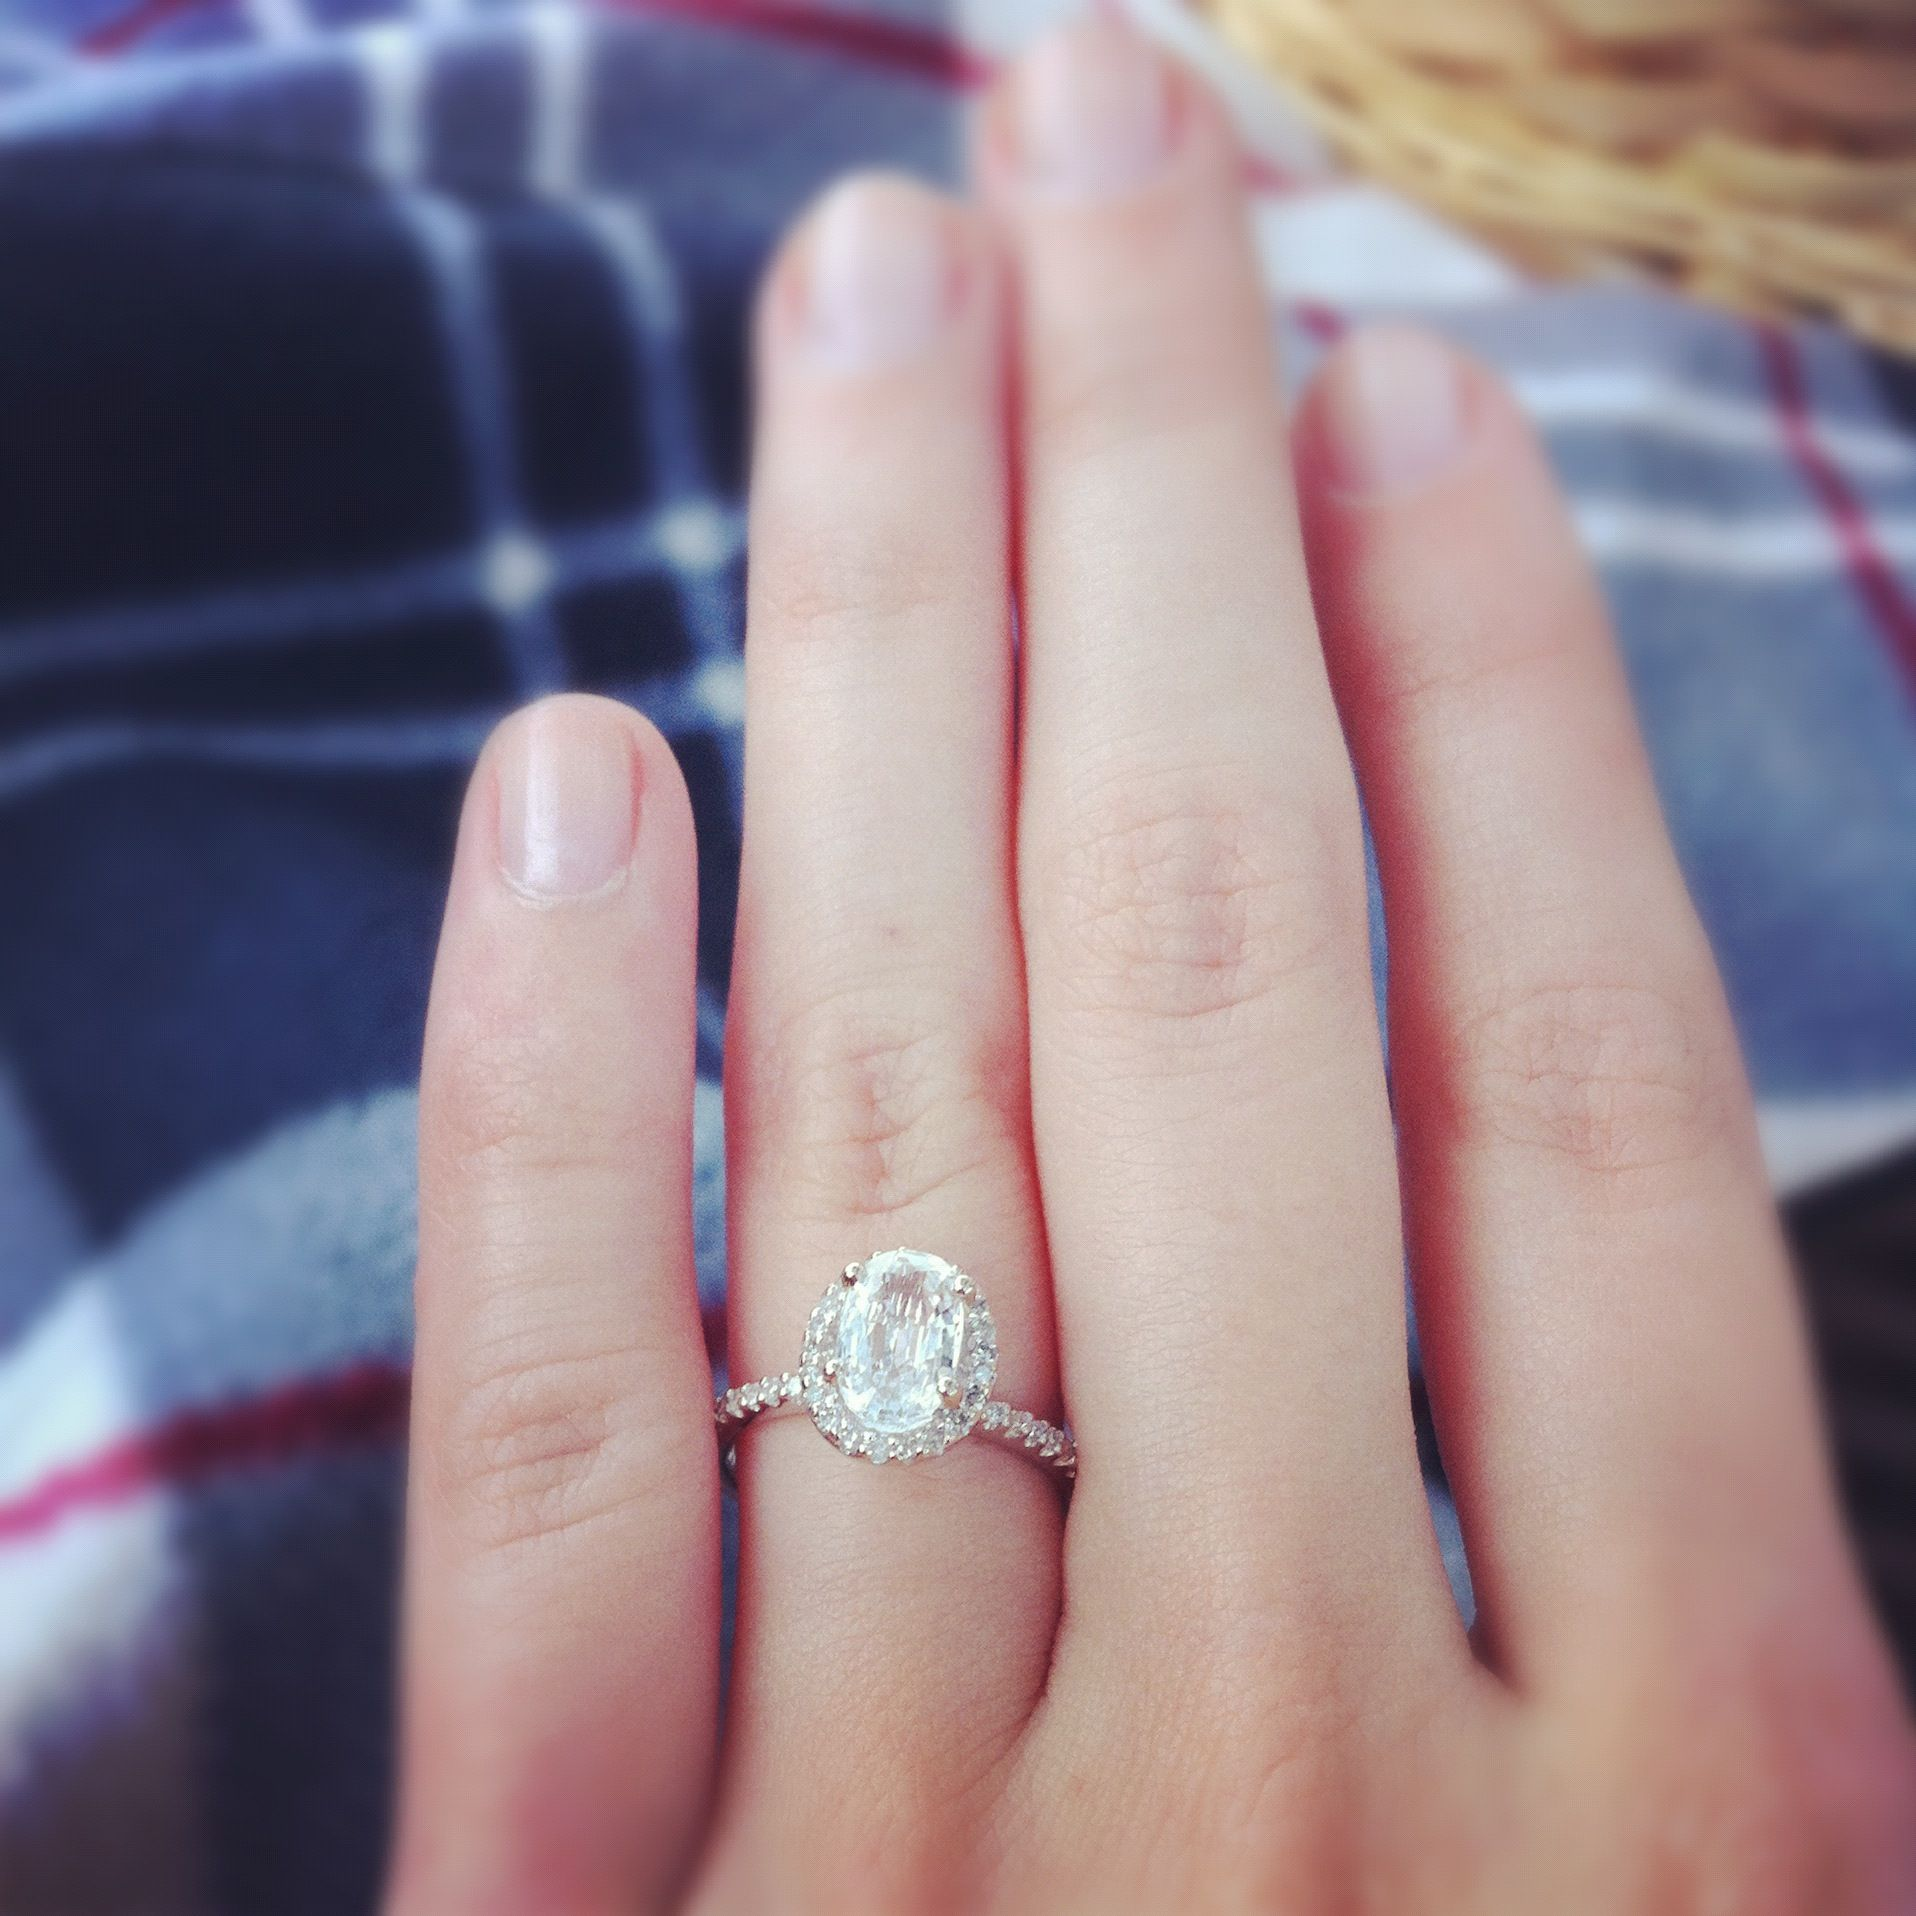 Engagement Rings No Stone: Awesome Engagement Ring! Oval Stone, No Diamonds Around